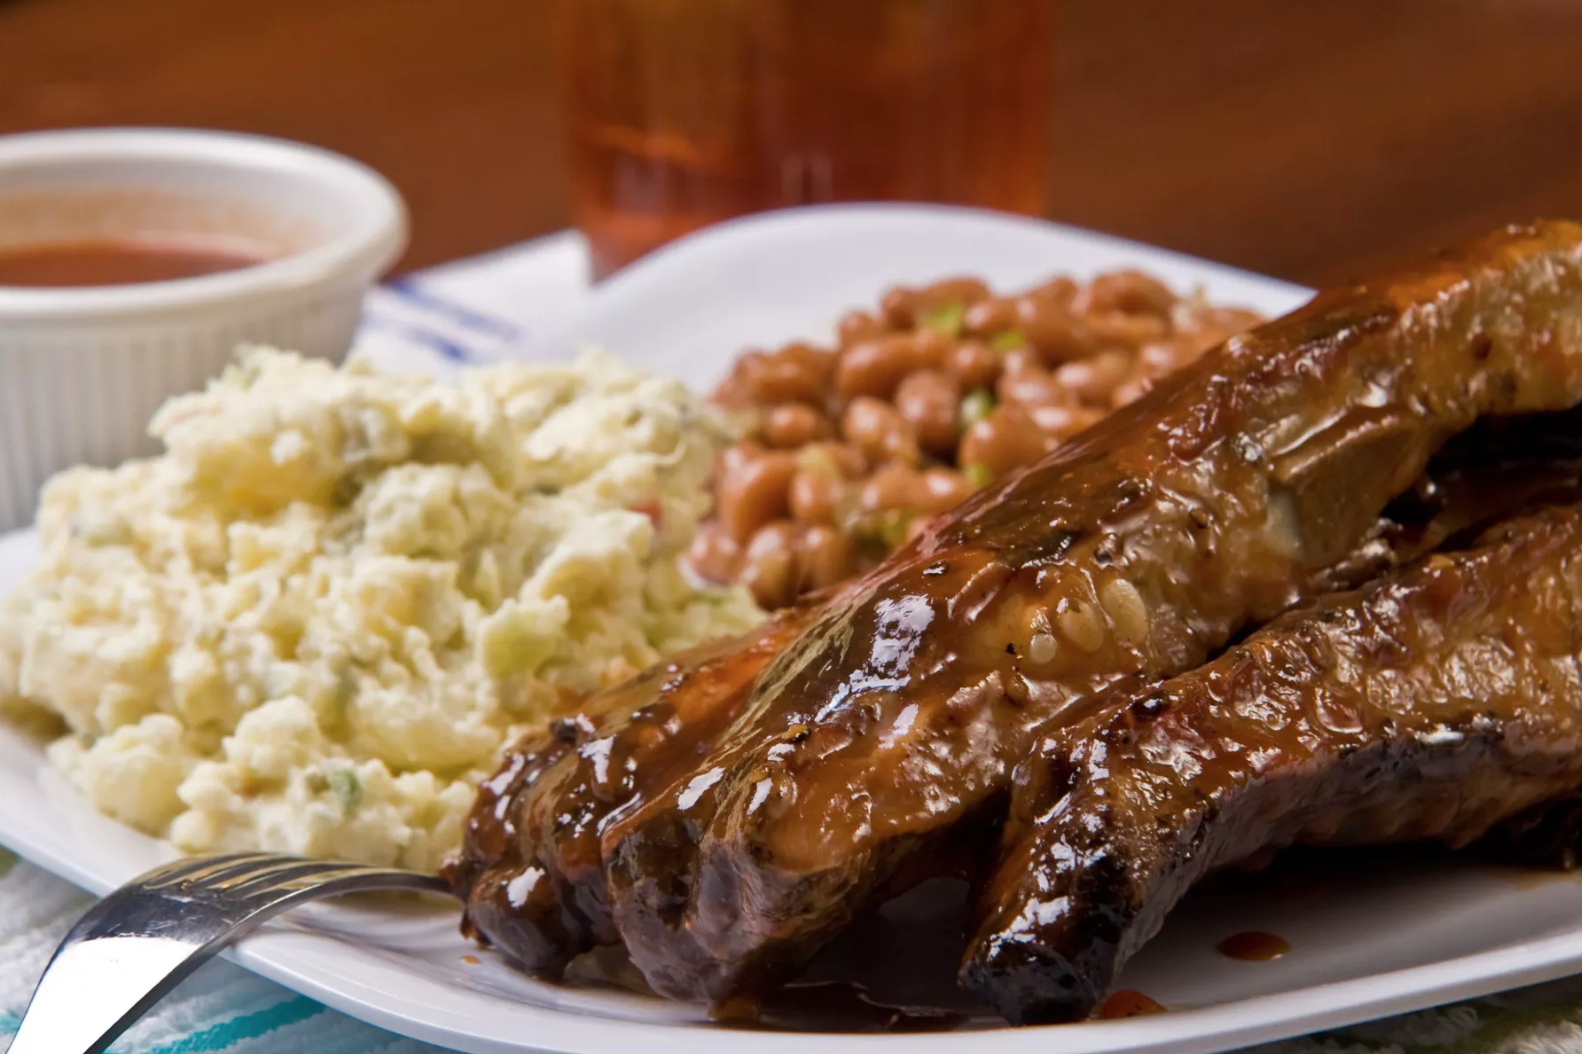 This Atlanta Eatery Has Been Cooking Up Delicious Soul Food Since 1947